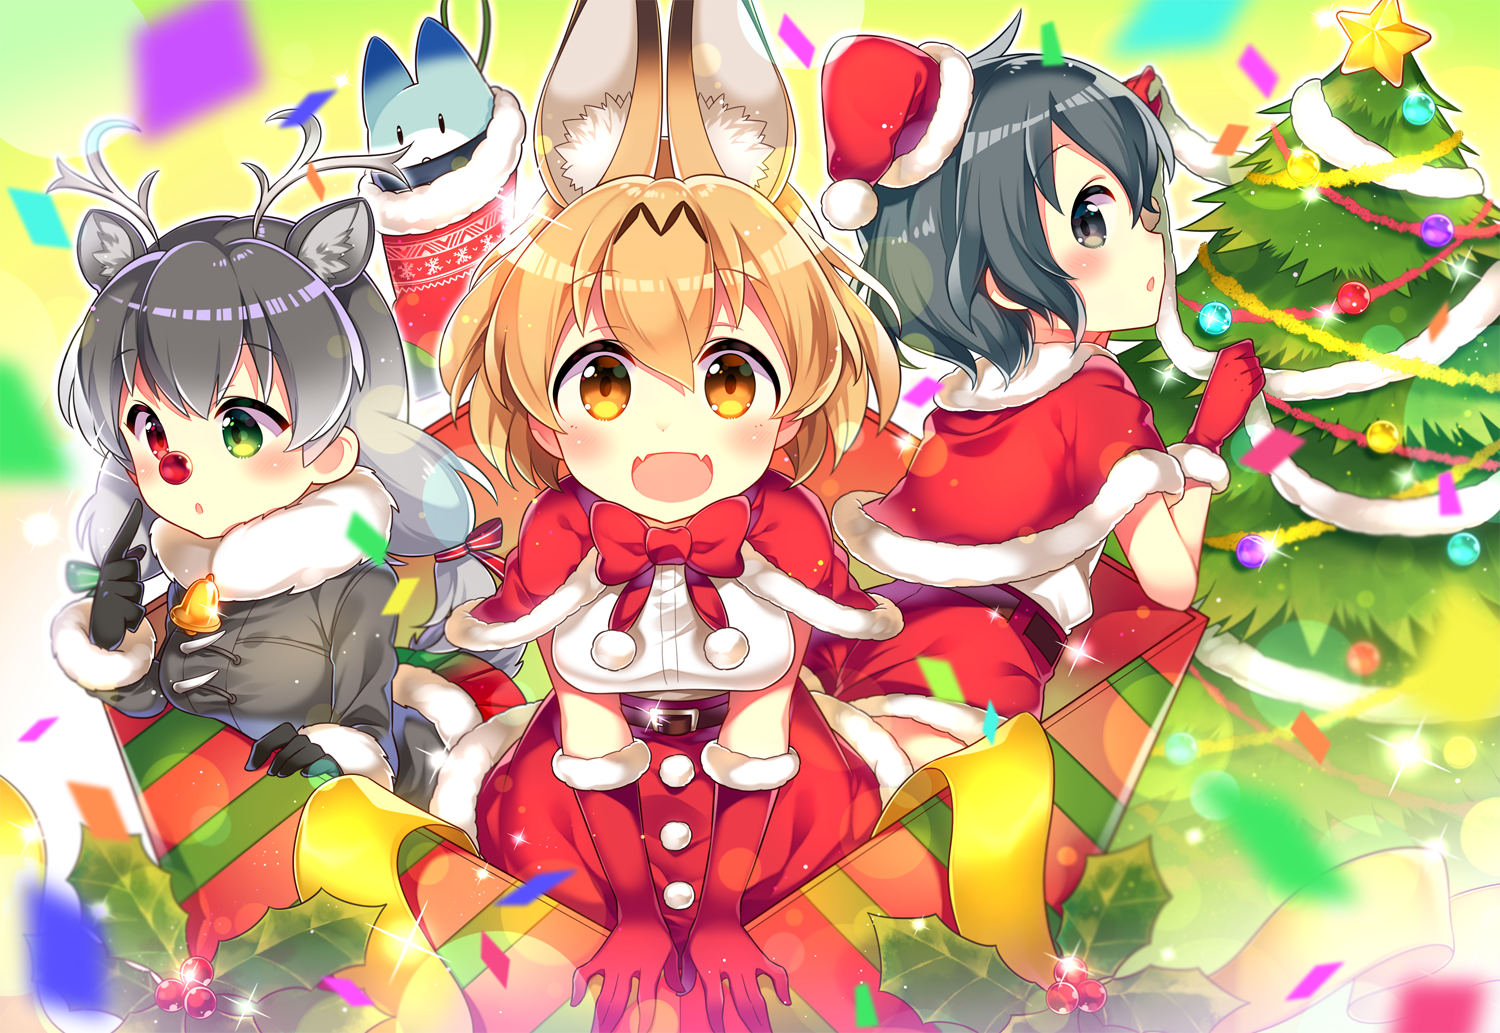 __kaban_lucky_beast_reindeer_and_serval_kemono_friends_drawn_by_kurisu_sai__01d92b2ad3a4267828d24a93eedaa582.png